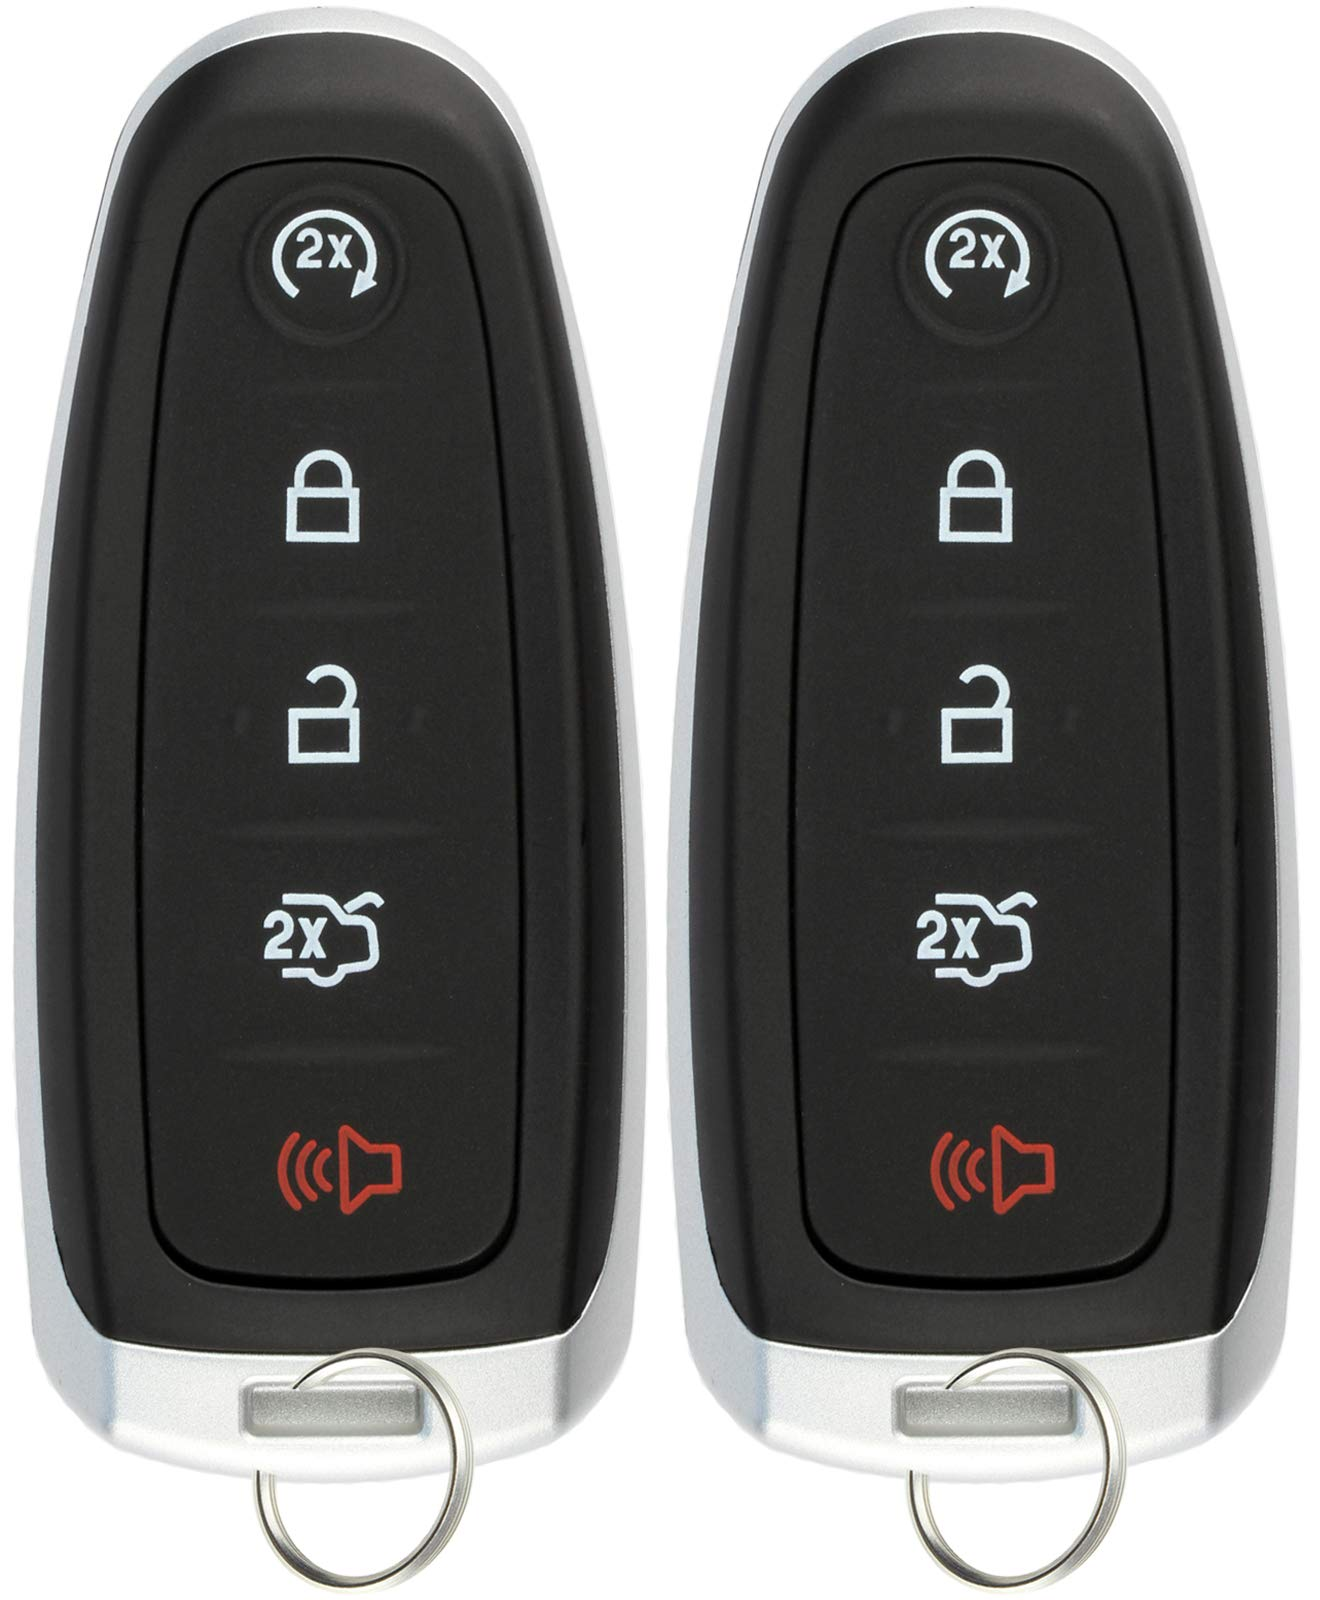 KeylessOption Keyless Entry Car Remote Start Smart Key Fob for Ford Lincoln M3N5WY8609 (Pack of 2) by KeylessOption